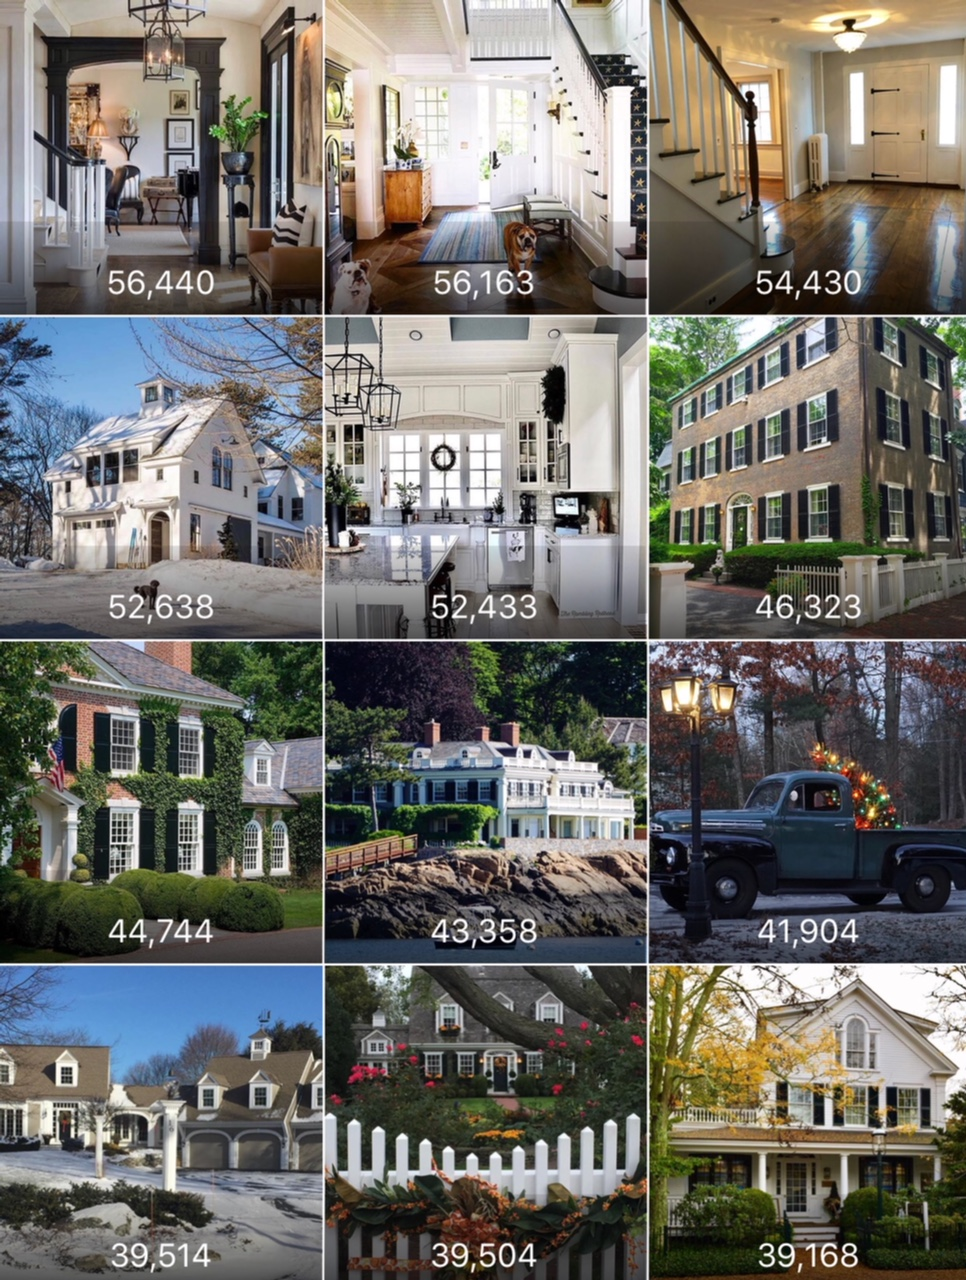 Your antique or luxury historic home could be listed here and/or on our social feeds! -